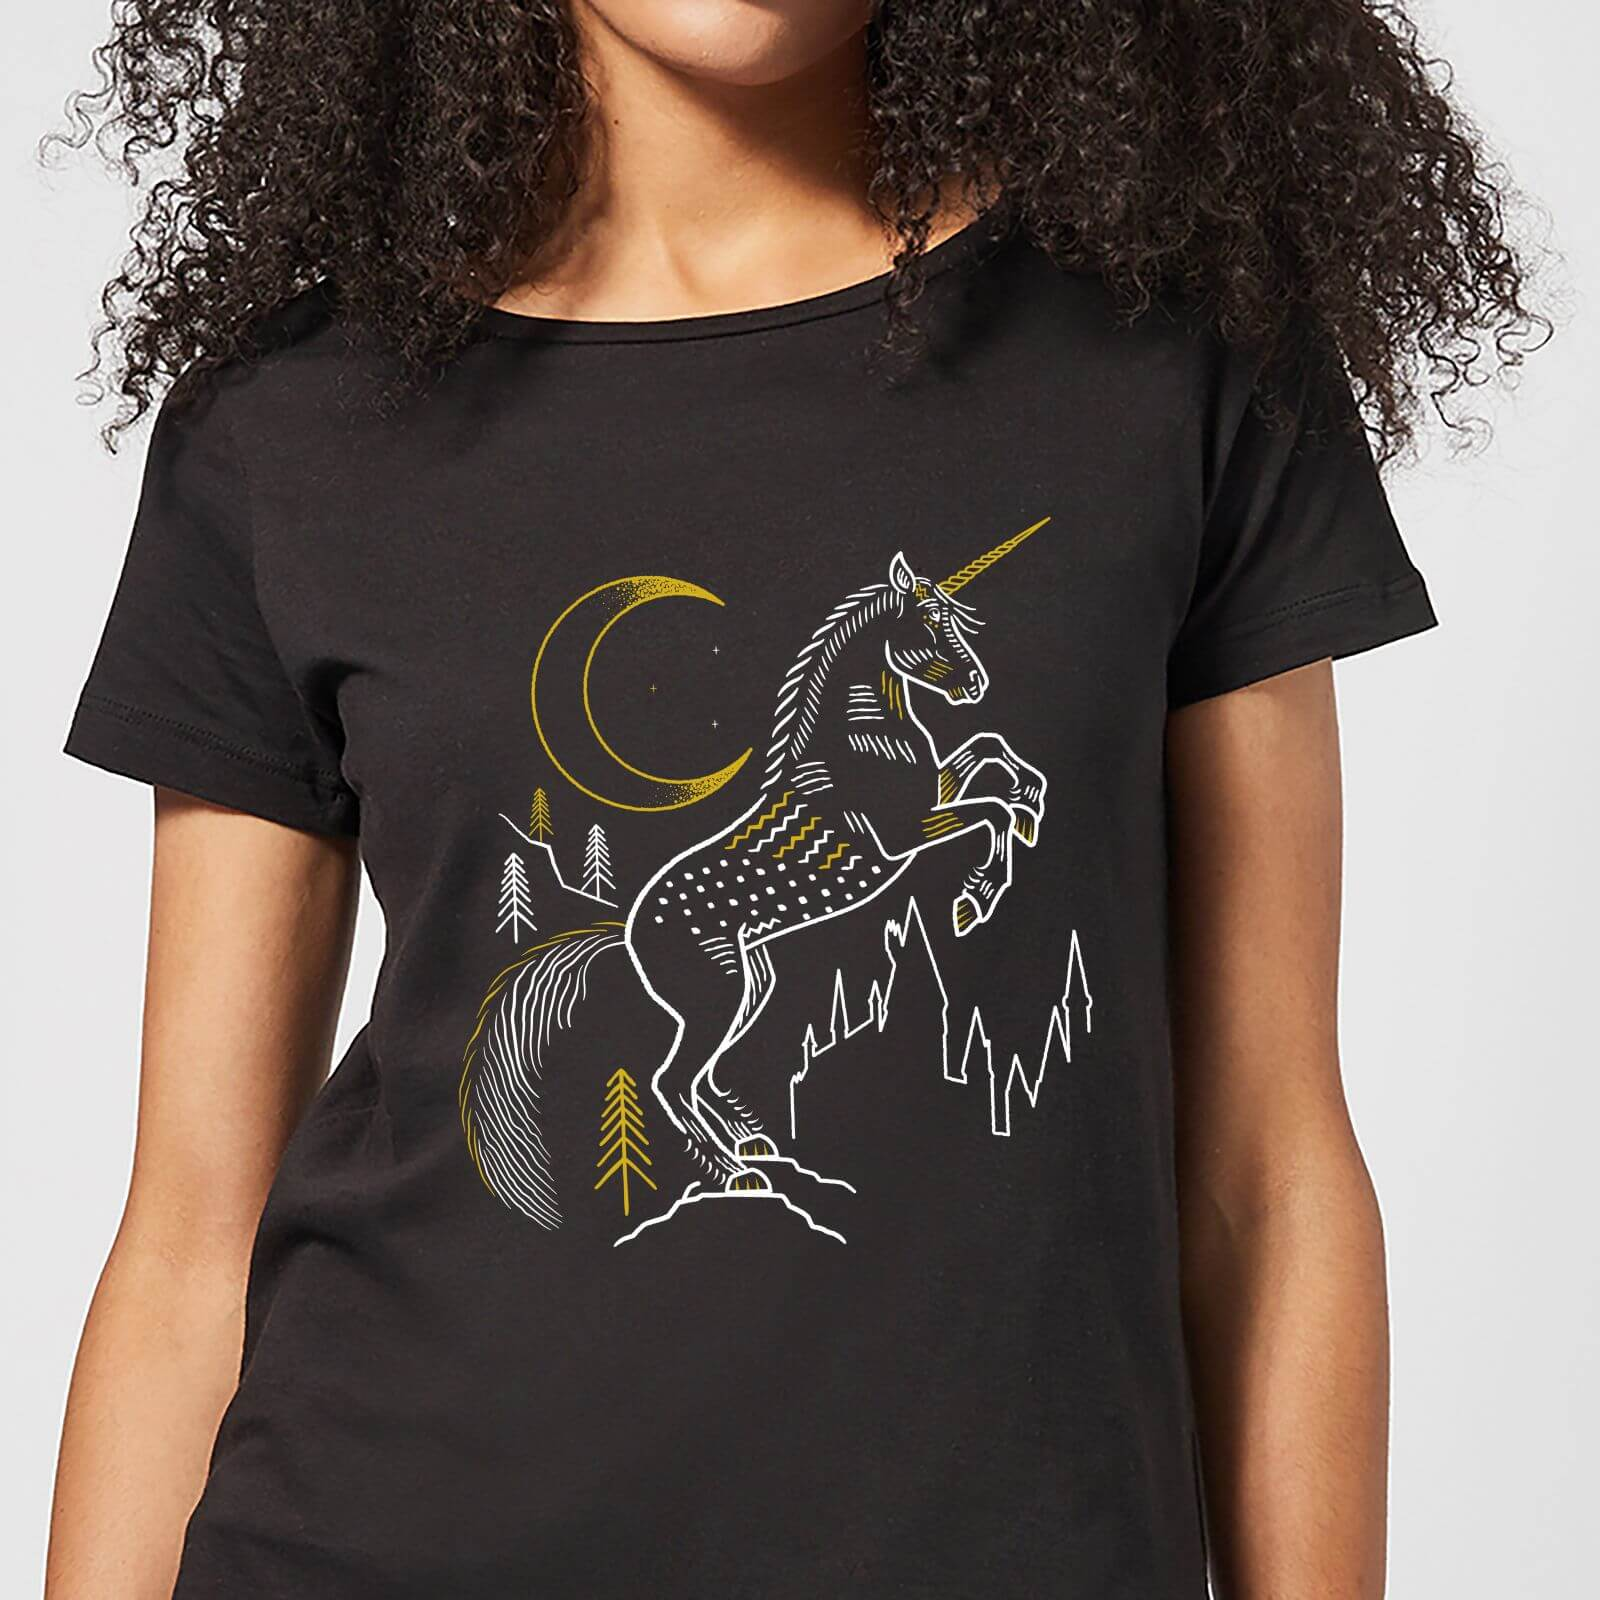 Harry Potter Unicorn Women's T-Shirt - Black - XXL - Negro de Harry Potter